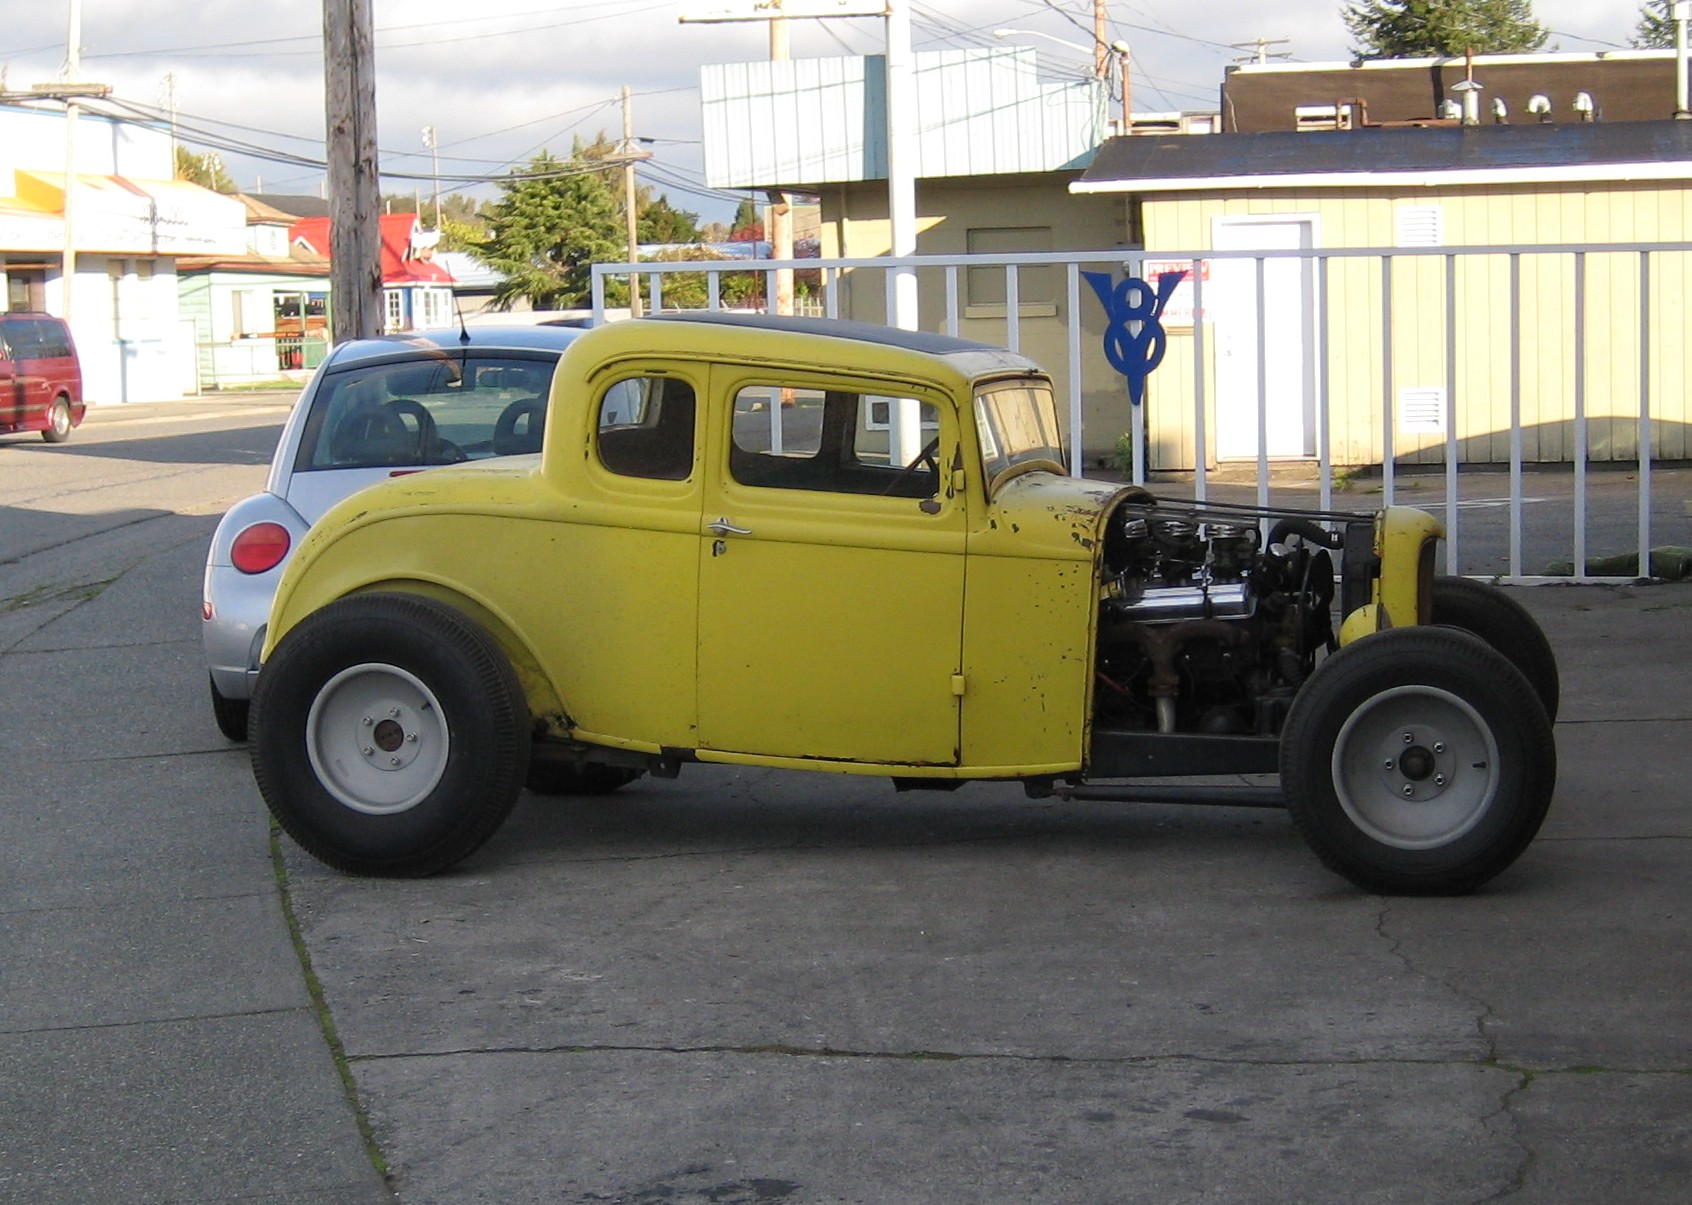 File:Flickr - Hugo90 - Saw this old hot rod driving around Mount ...